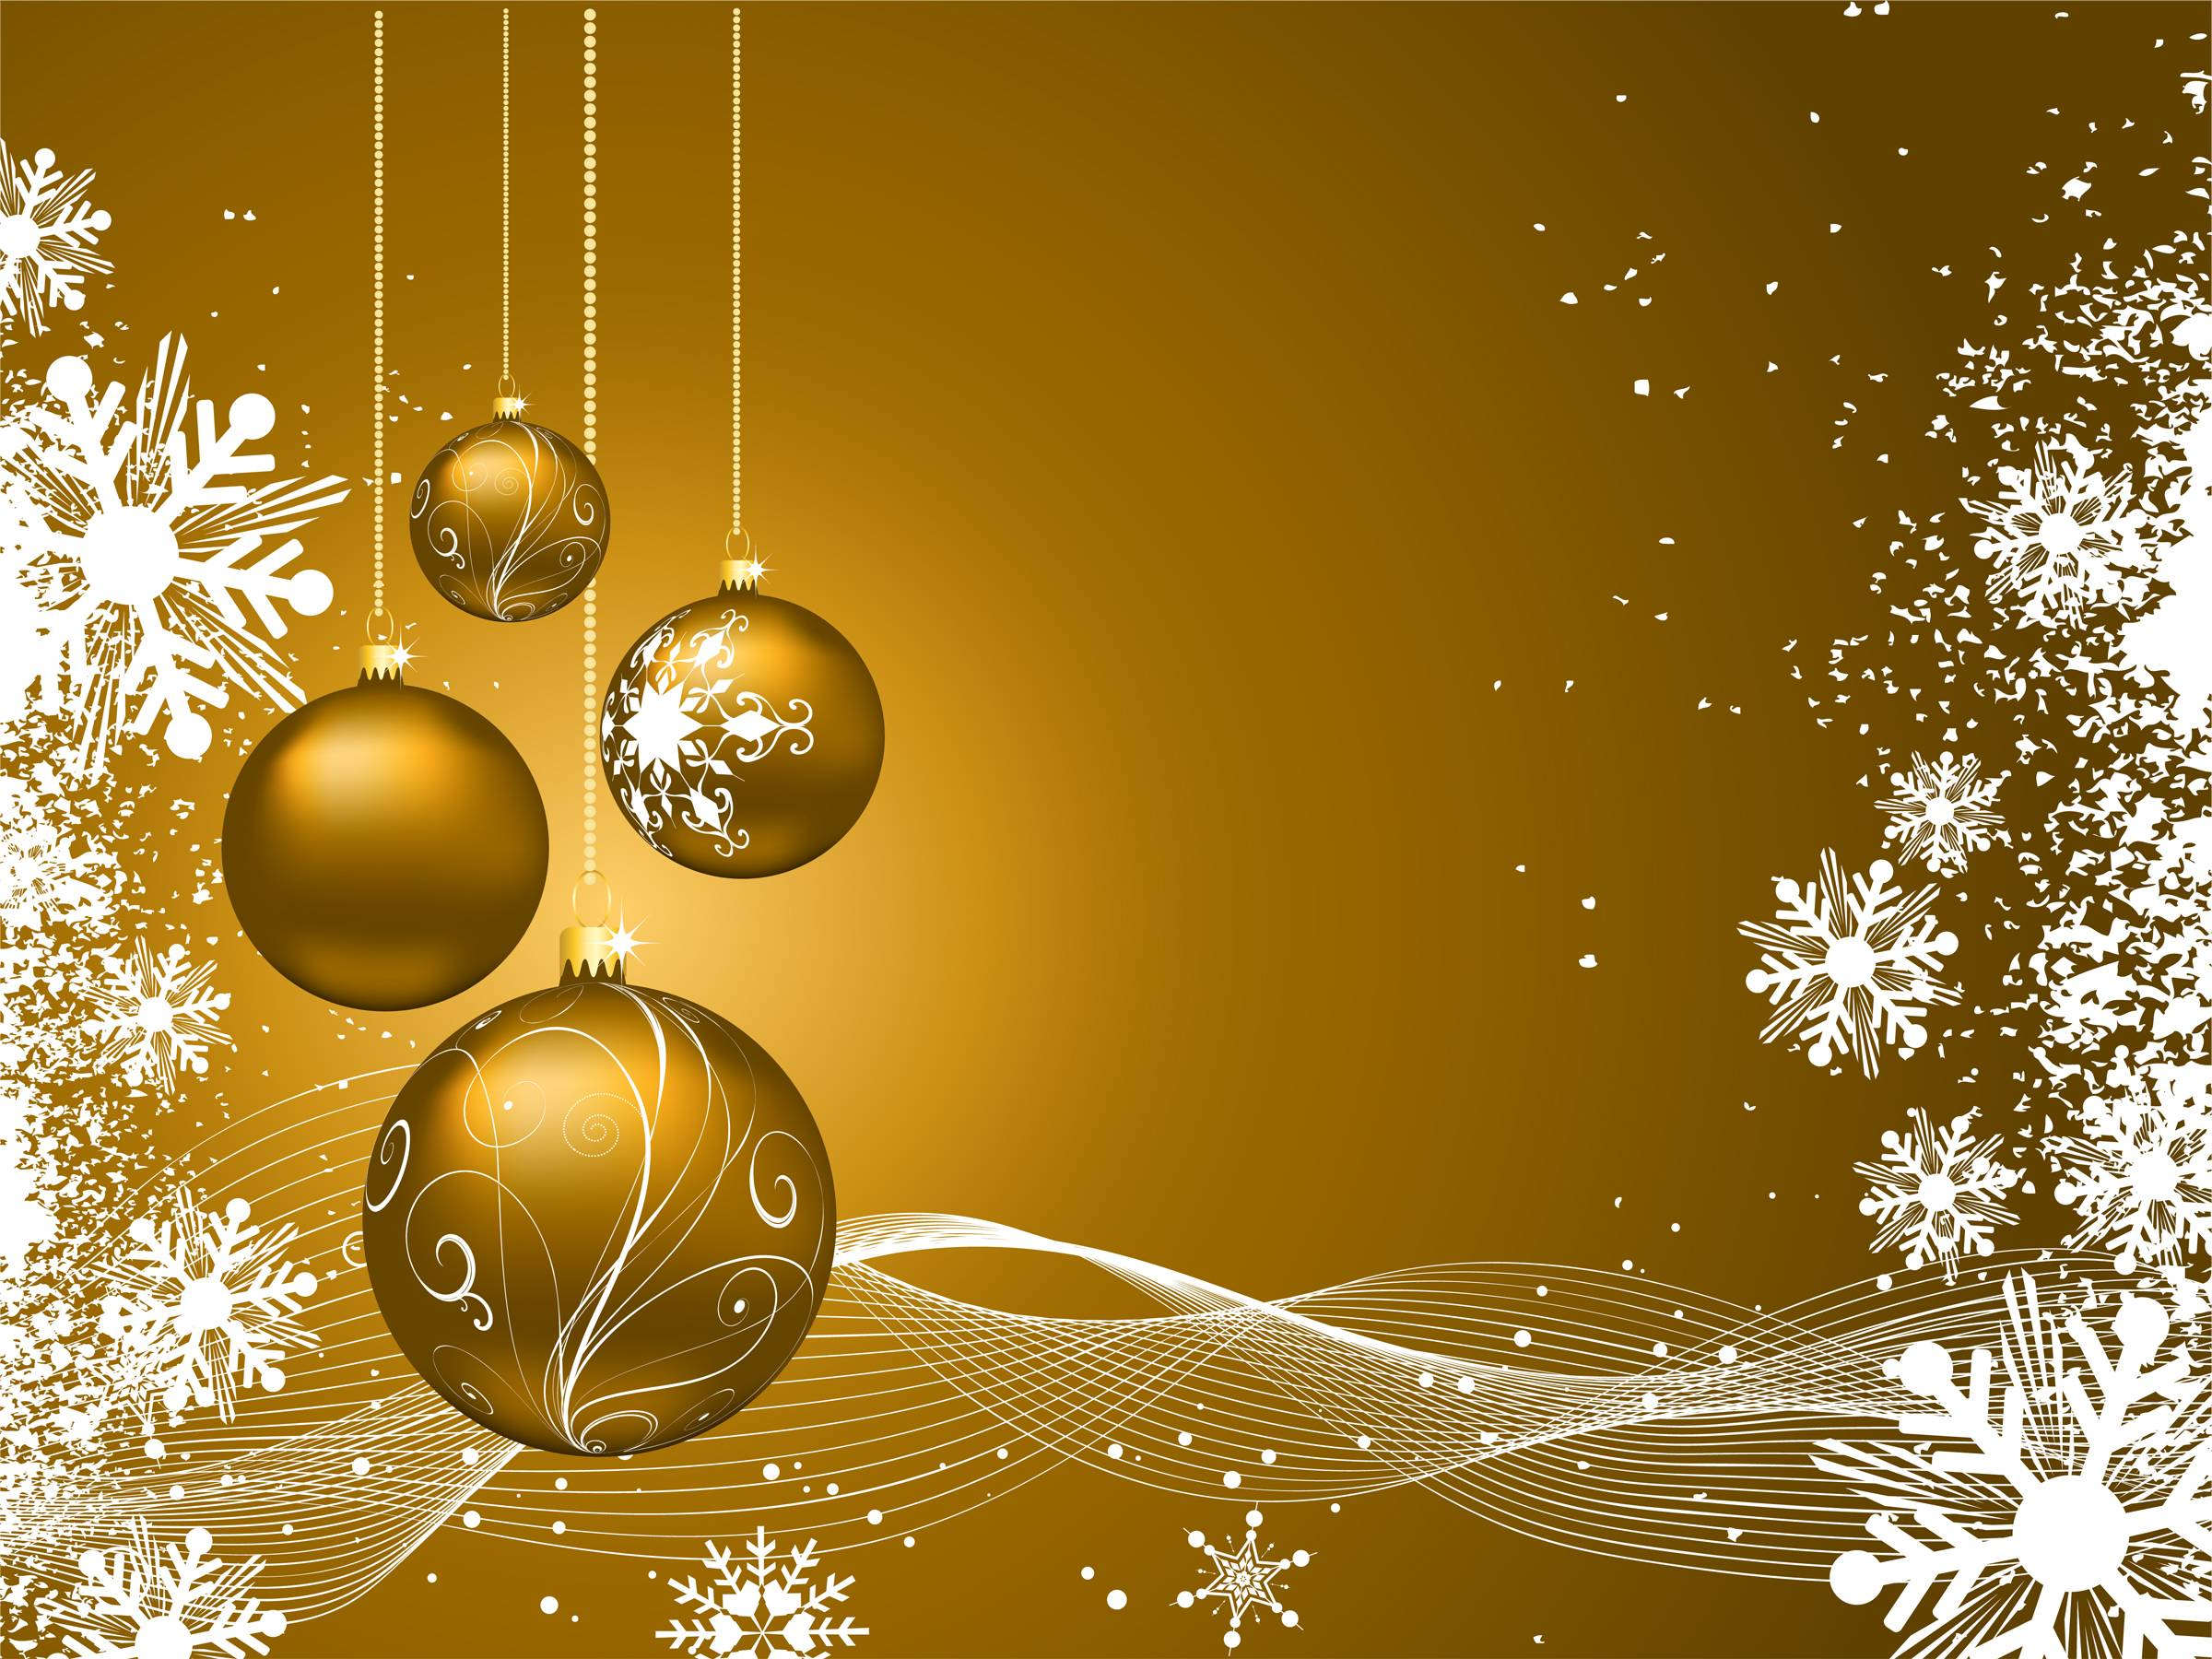 Christmas Wallpapers 32 Backgrounds